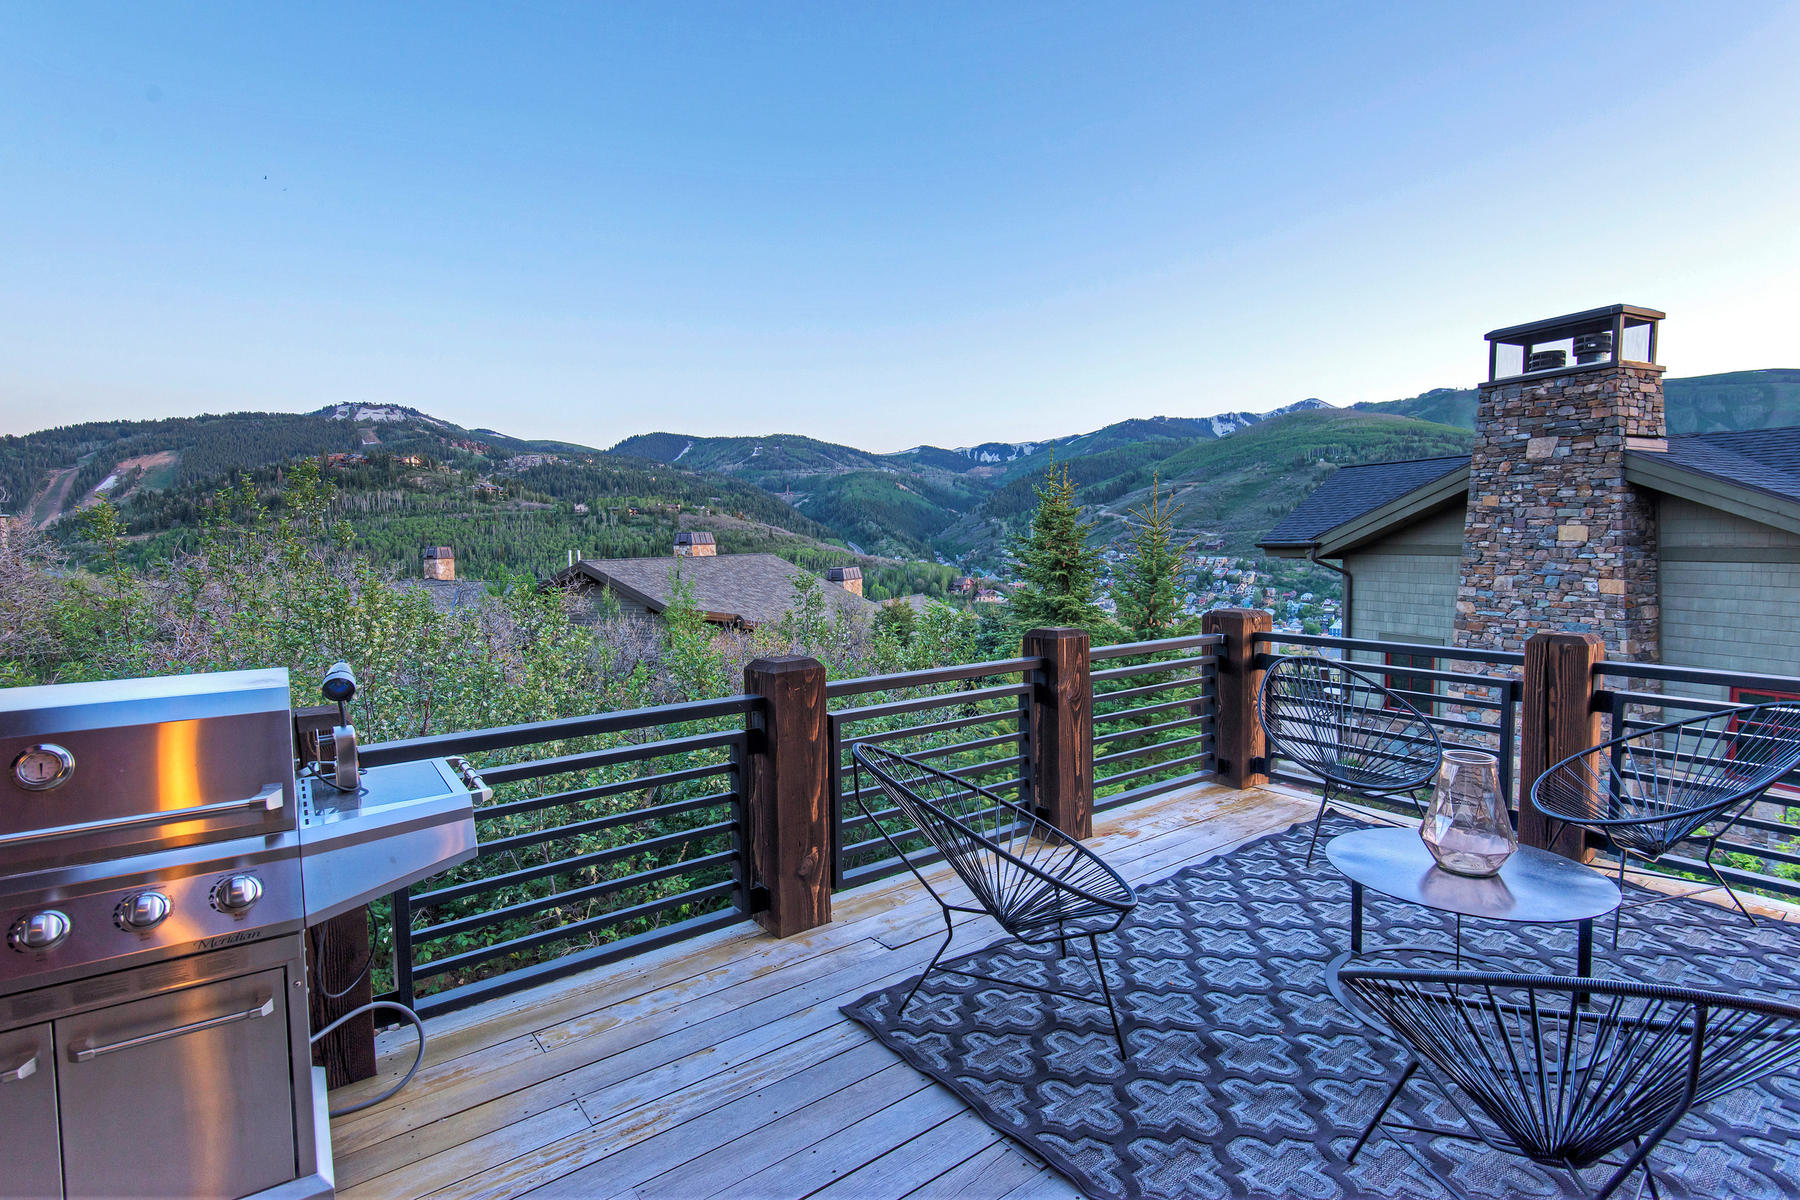 Additional photo for property listing at Fresh Mountain Modern with Incredible Views 1468 April Mountain Dr Park City, Юта 84060 Соединенные Штаты